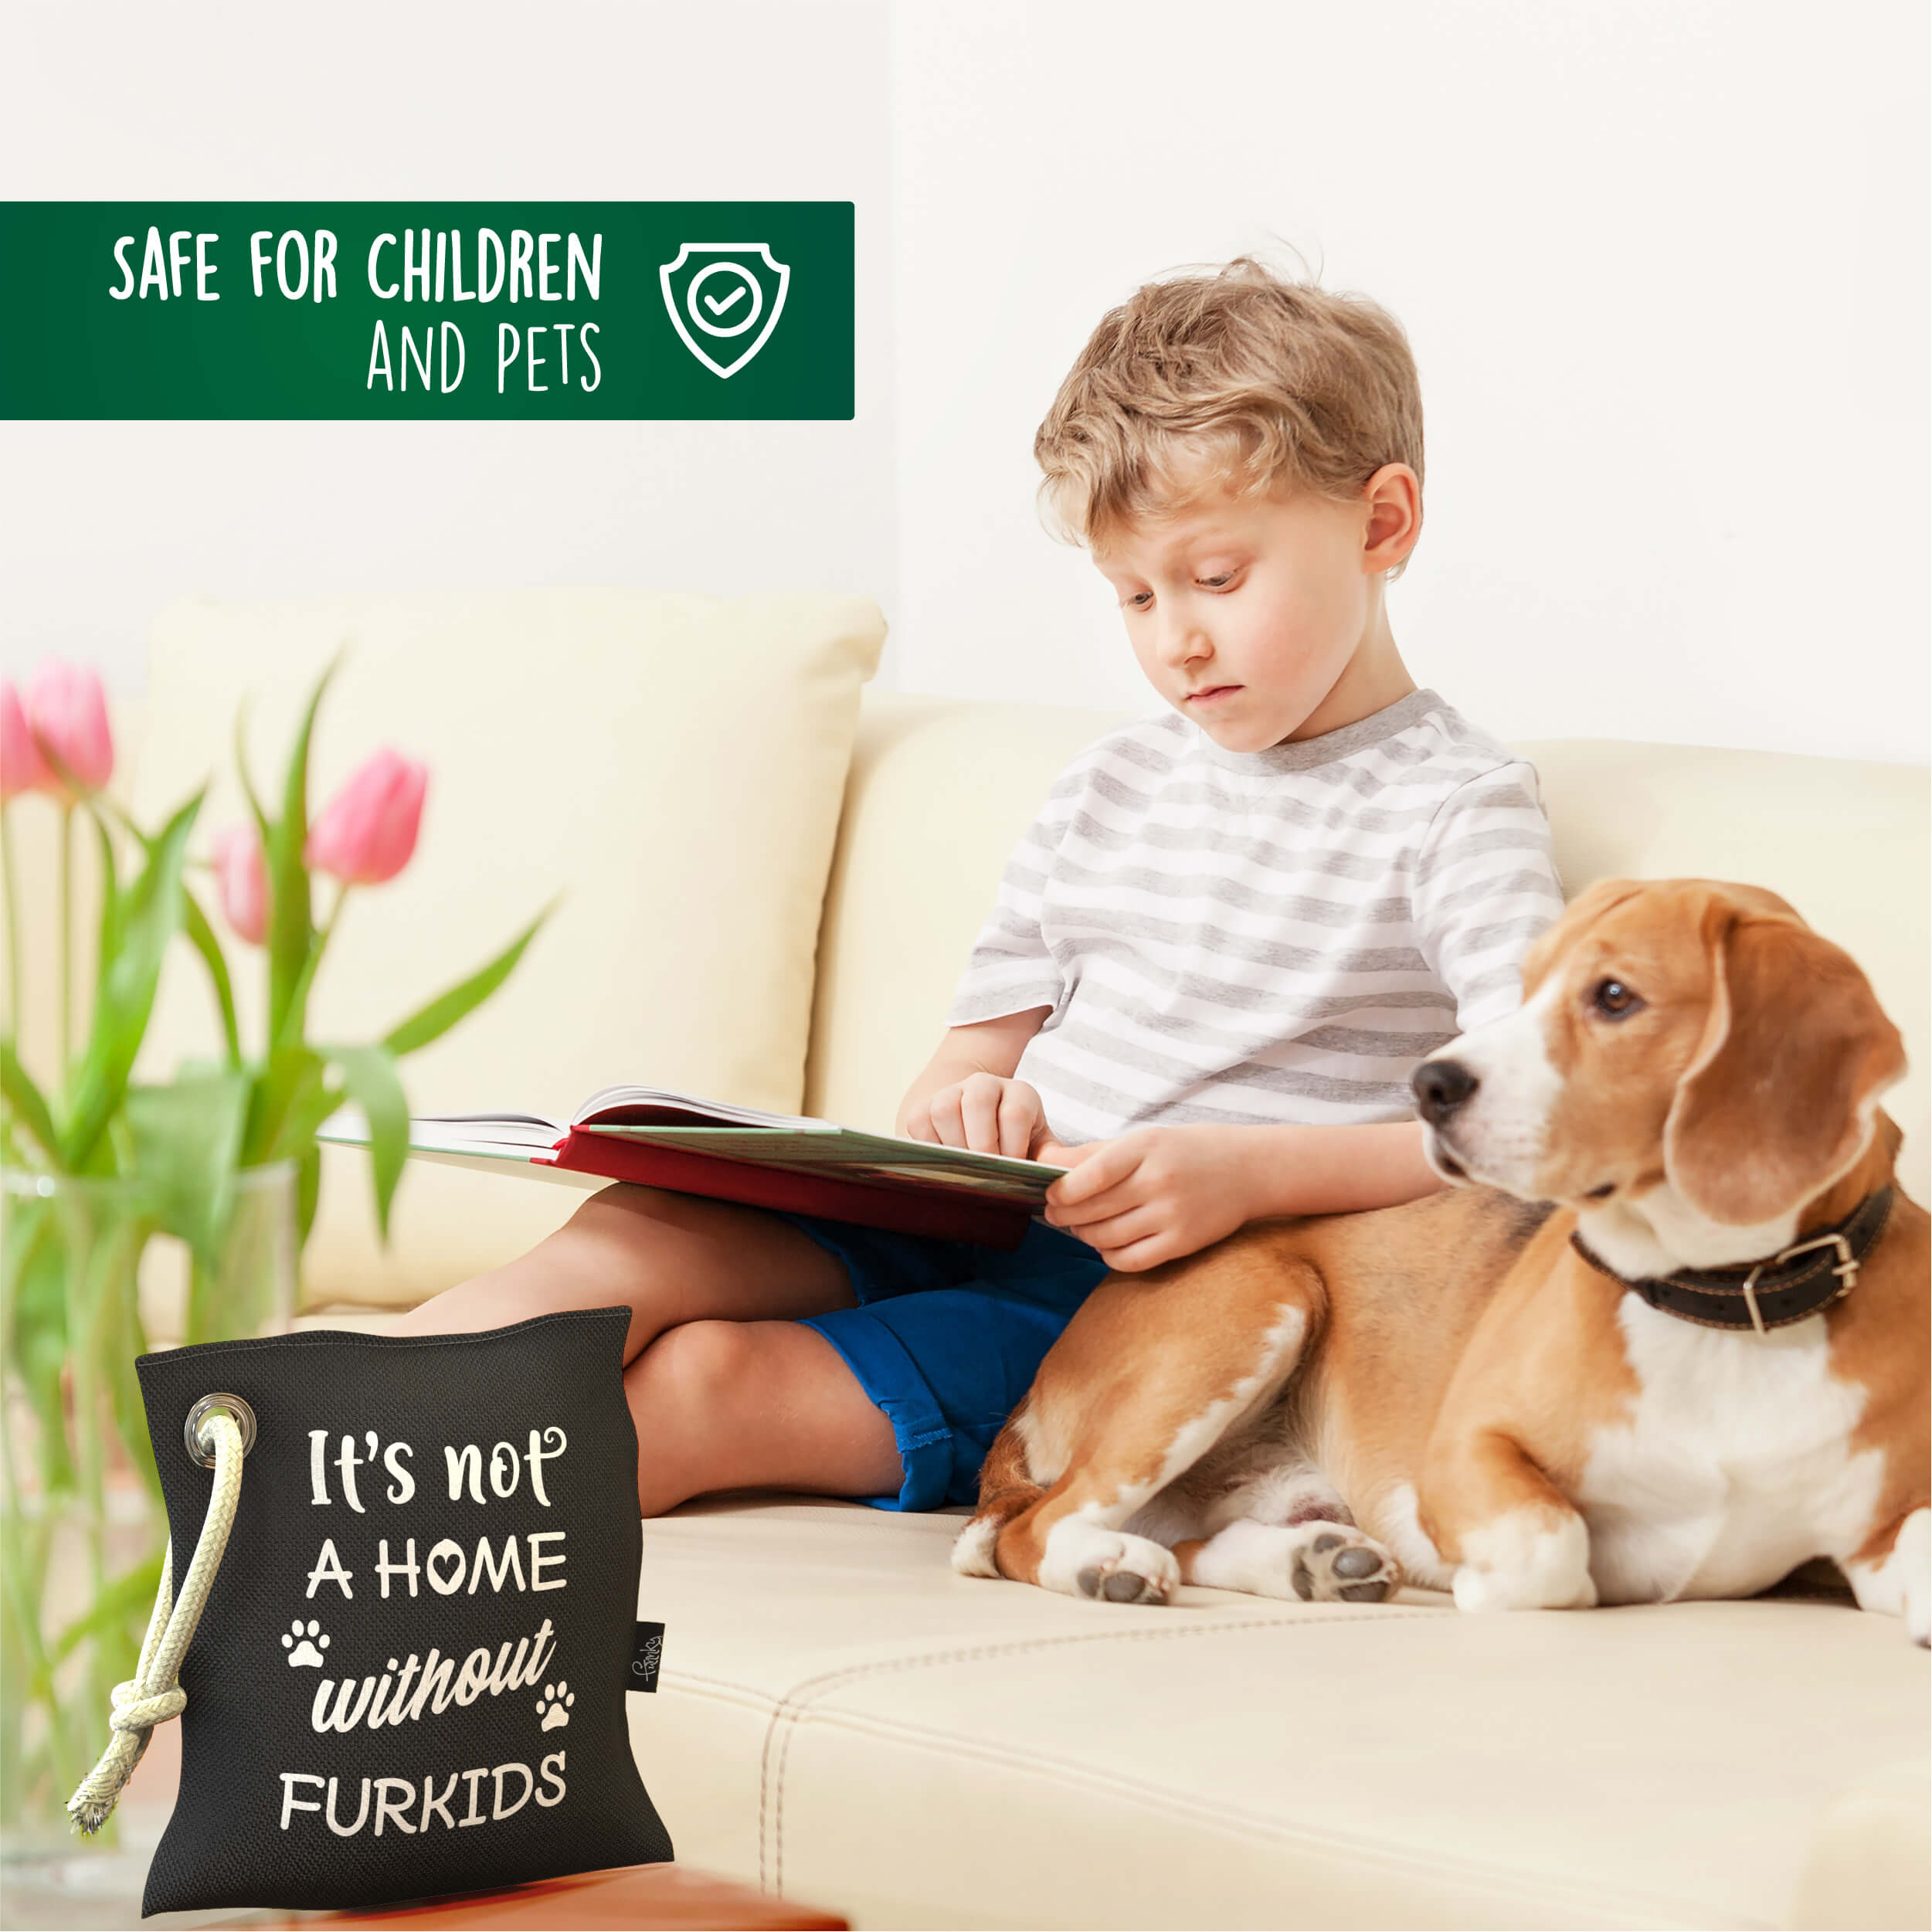 Funnky Bamboo Charcoal Air Purifying Bags are safe for Children and Pets